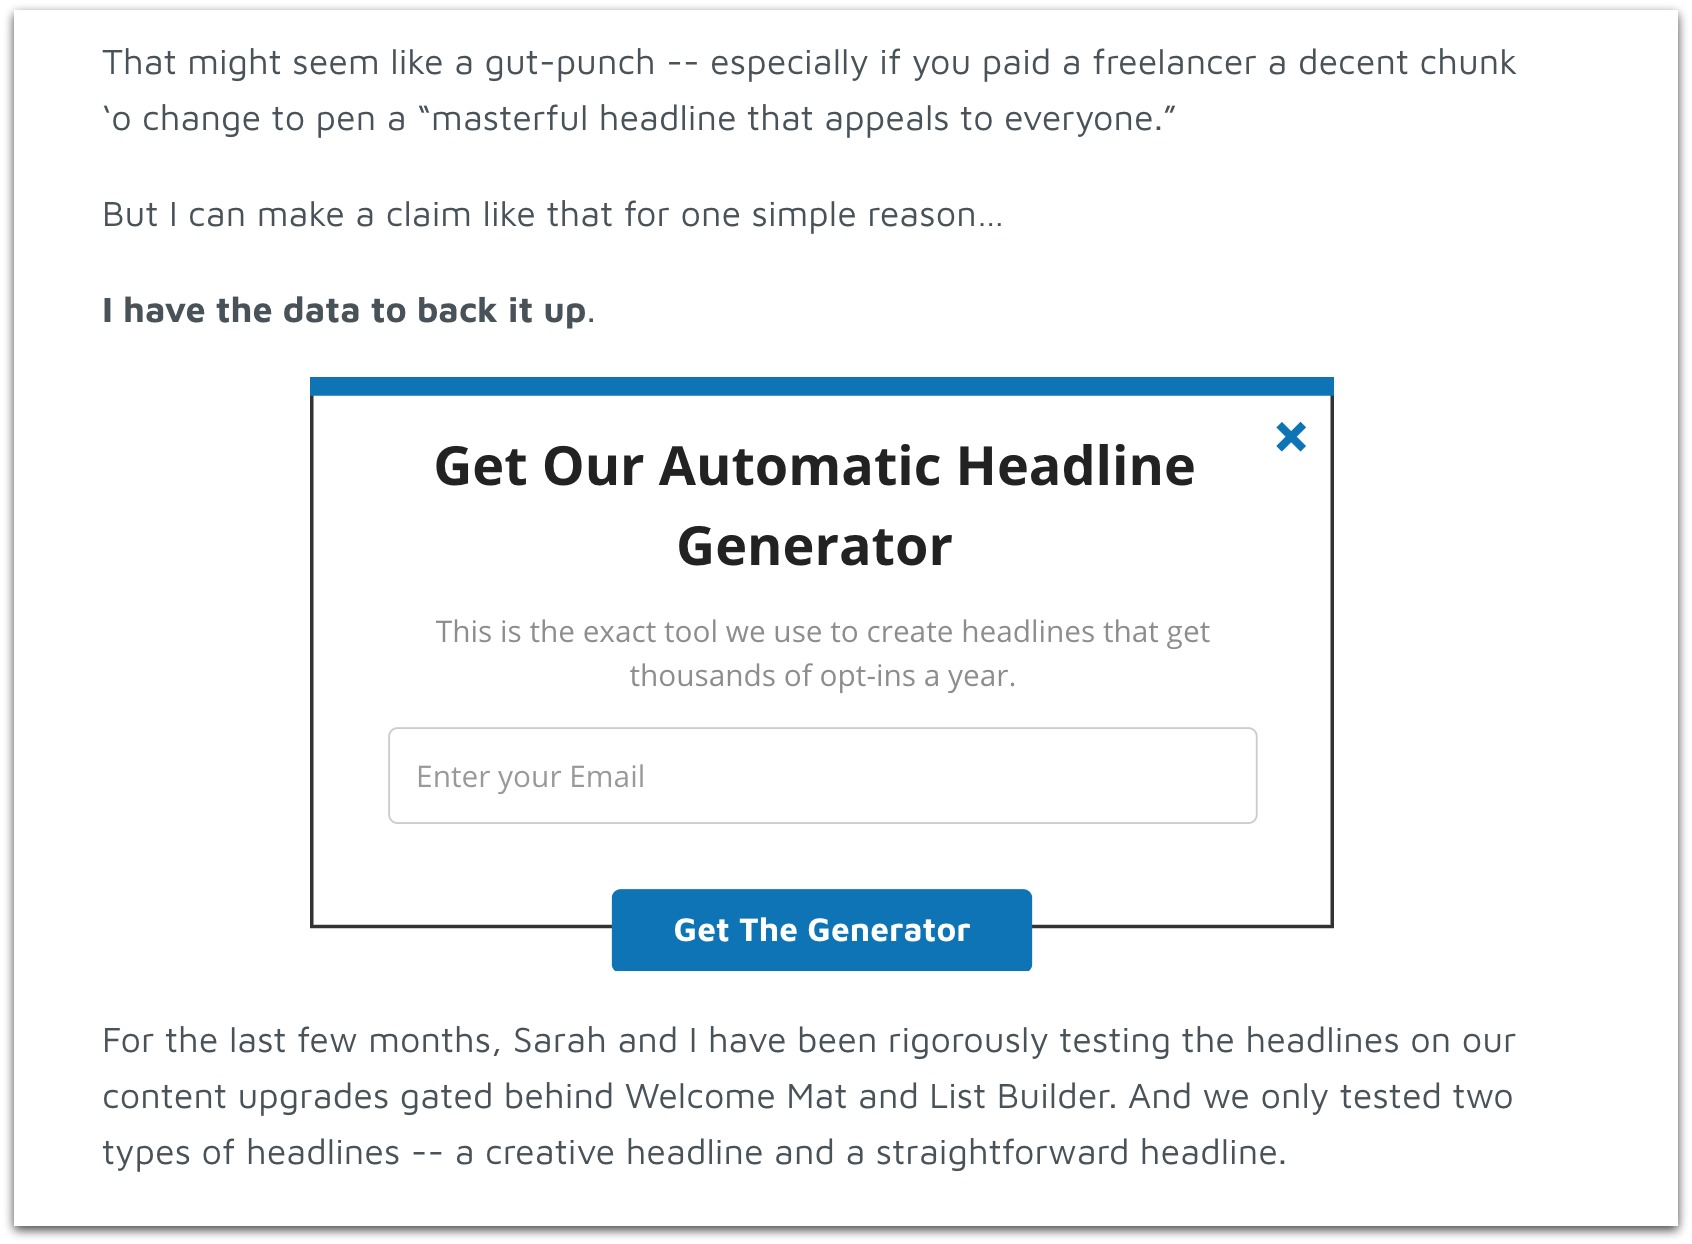 get our automatic headline generator